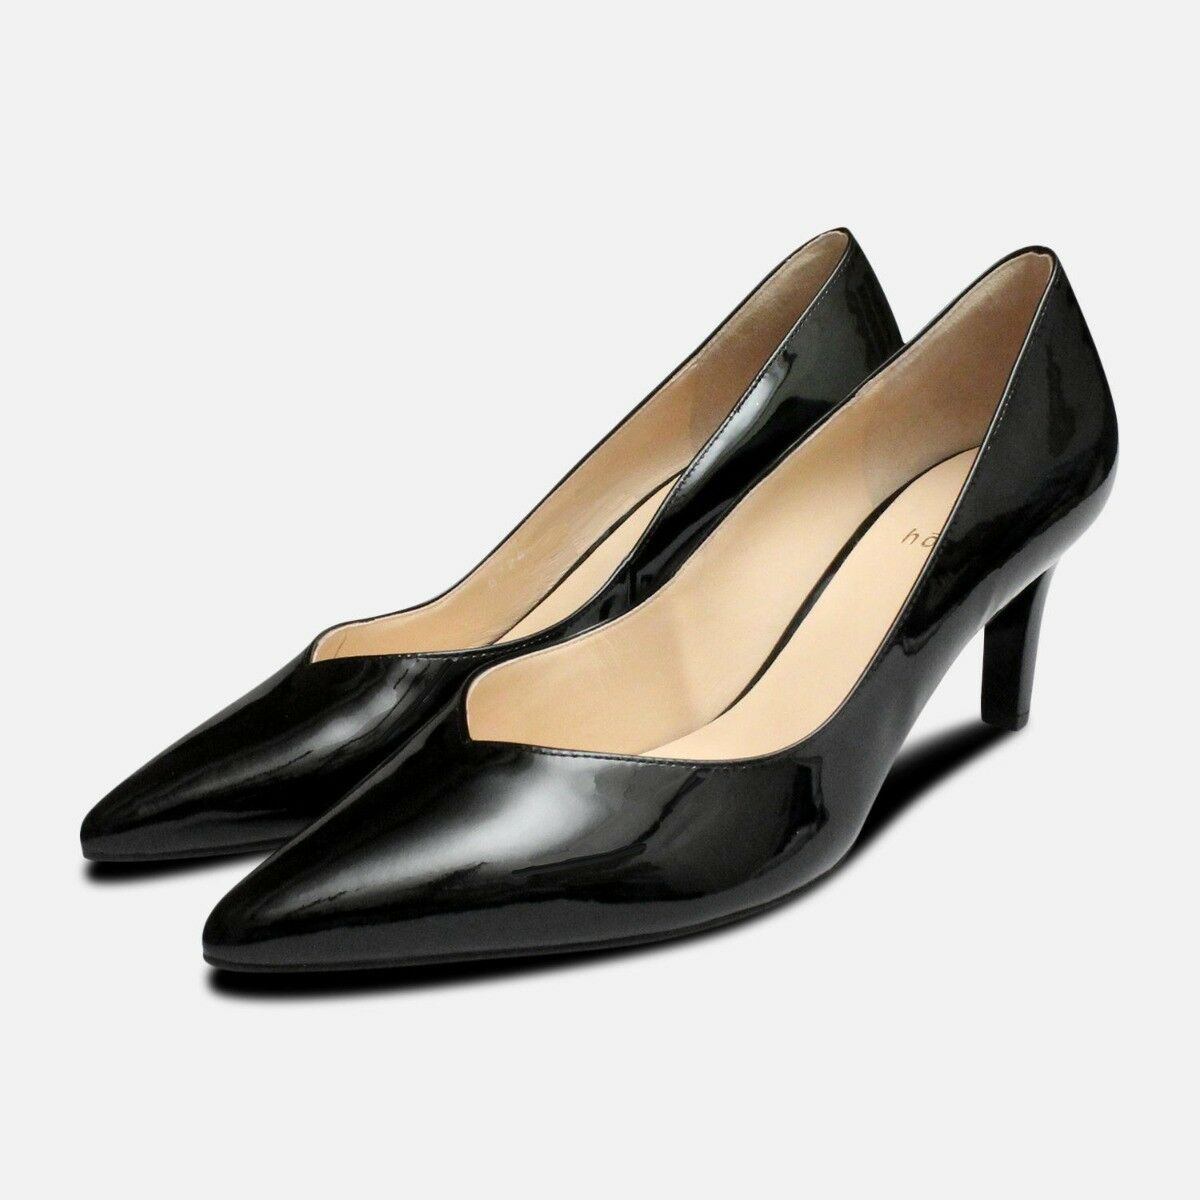 Hogl Black Patent Pointed Pointed Pointed Toe Medium Heel shoes 06047d